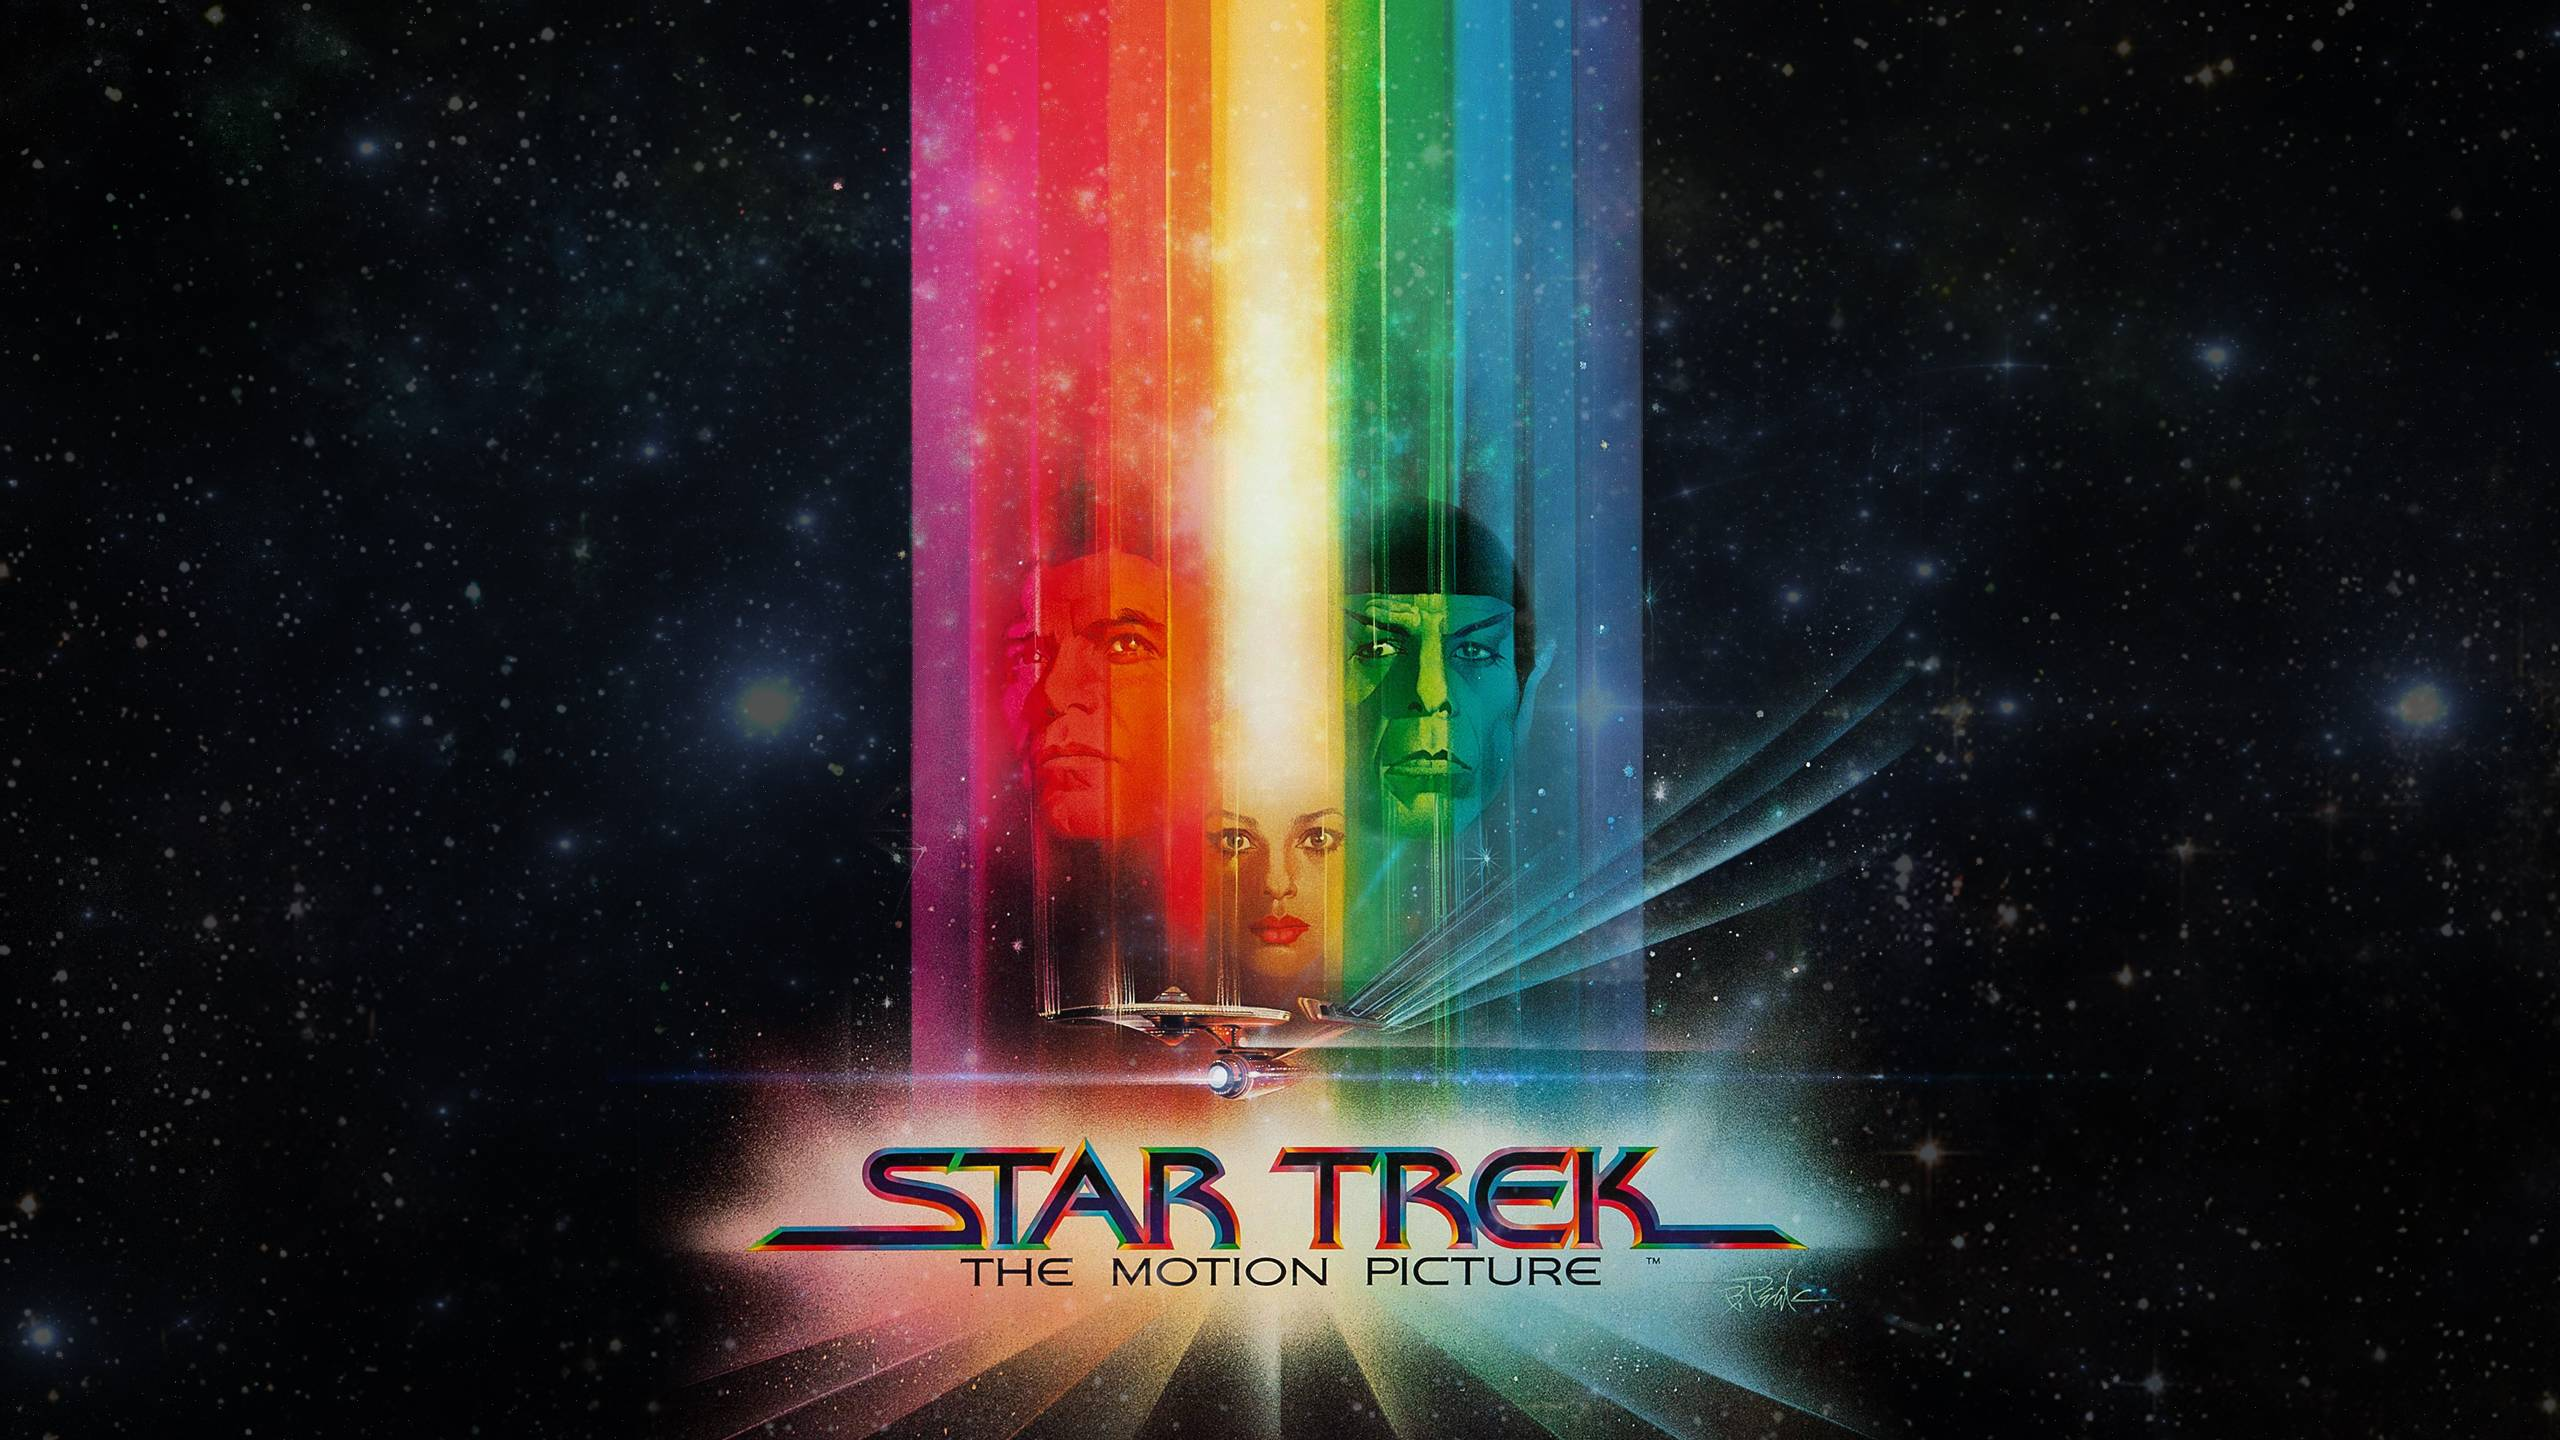 Star Trek 1 - il Film - the motion picture (1979) banner